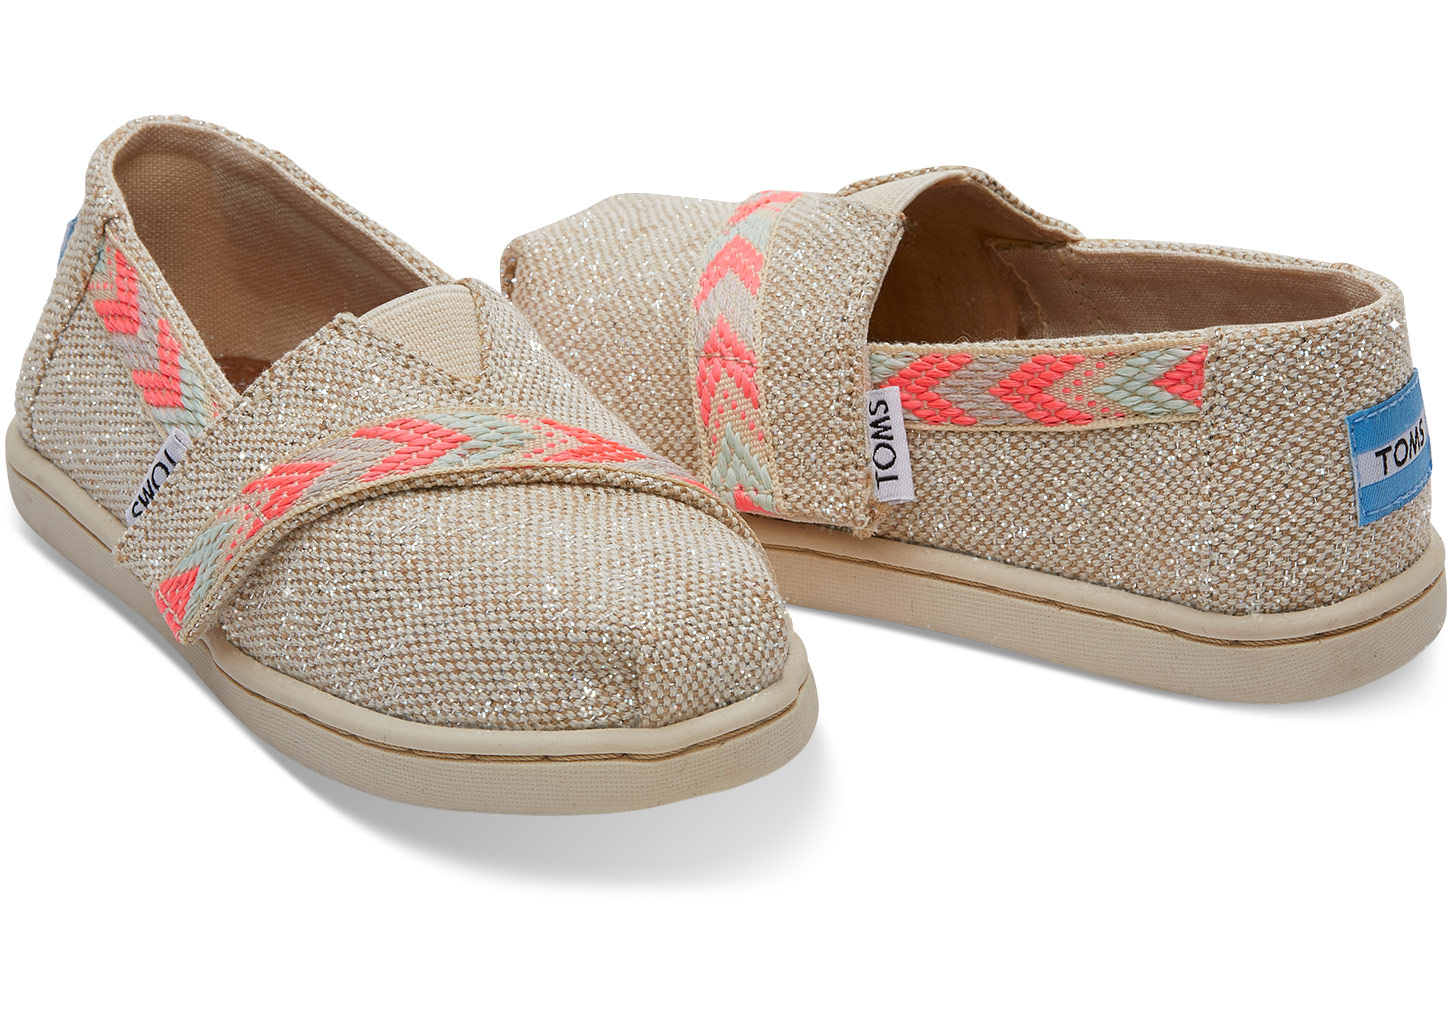 2a4983d0348 Classic Slip Ons - Natural Metallic Burlap - Flying Point Surf